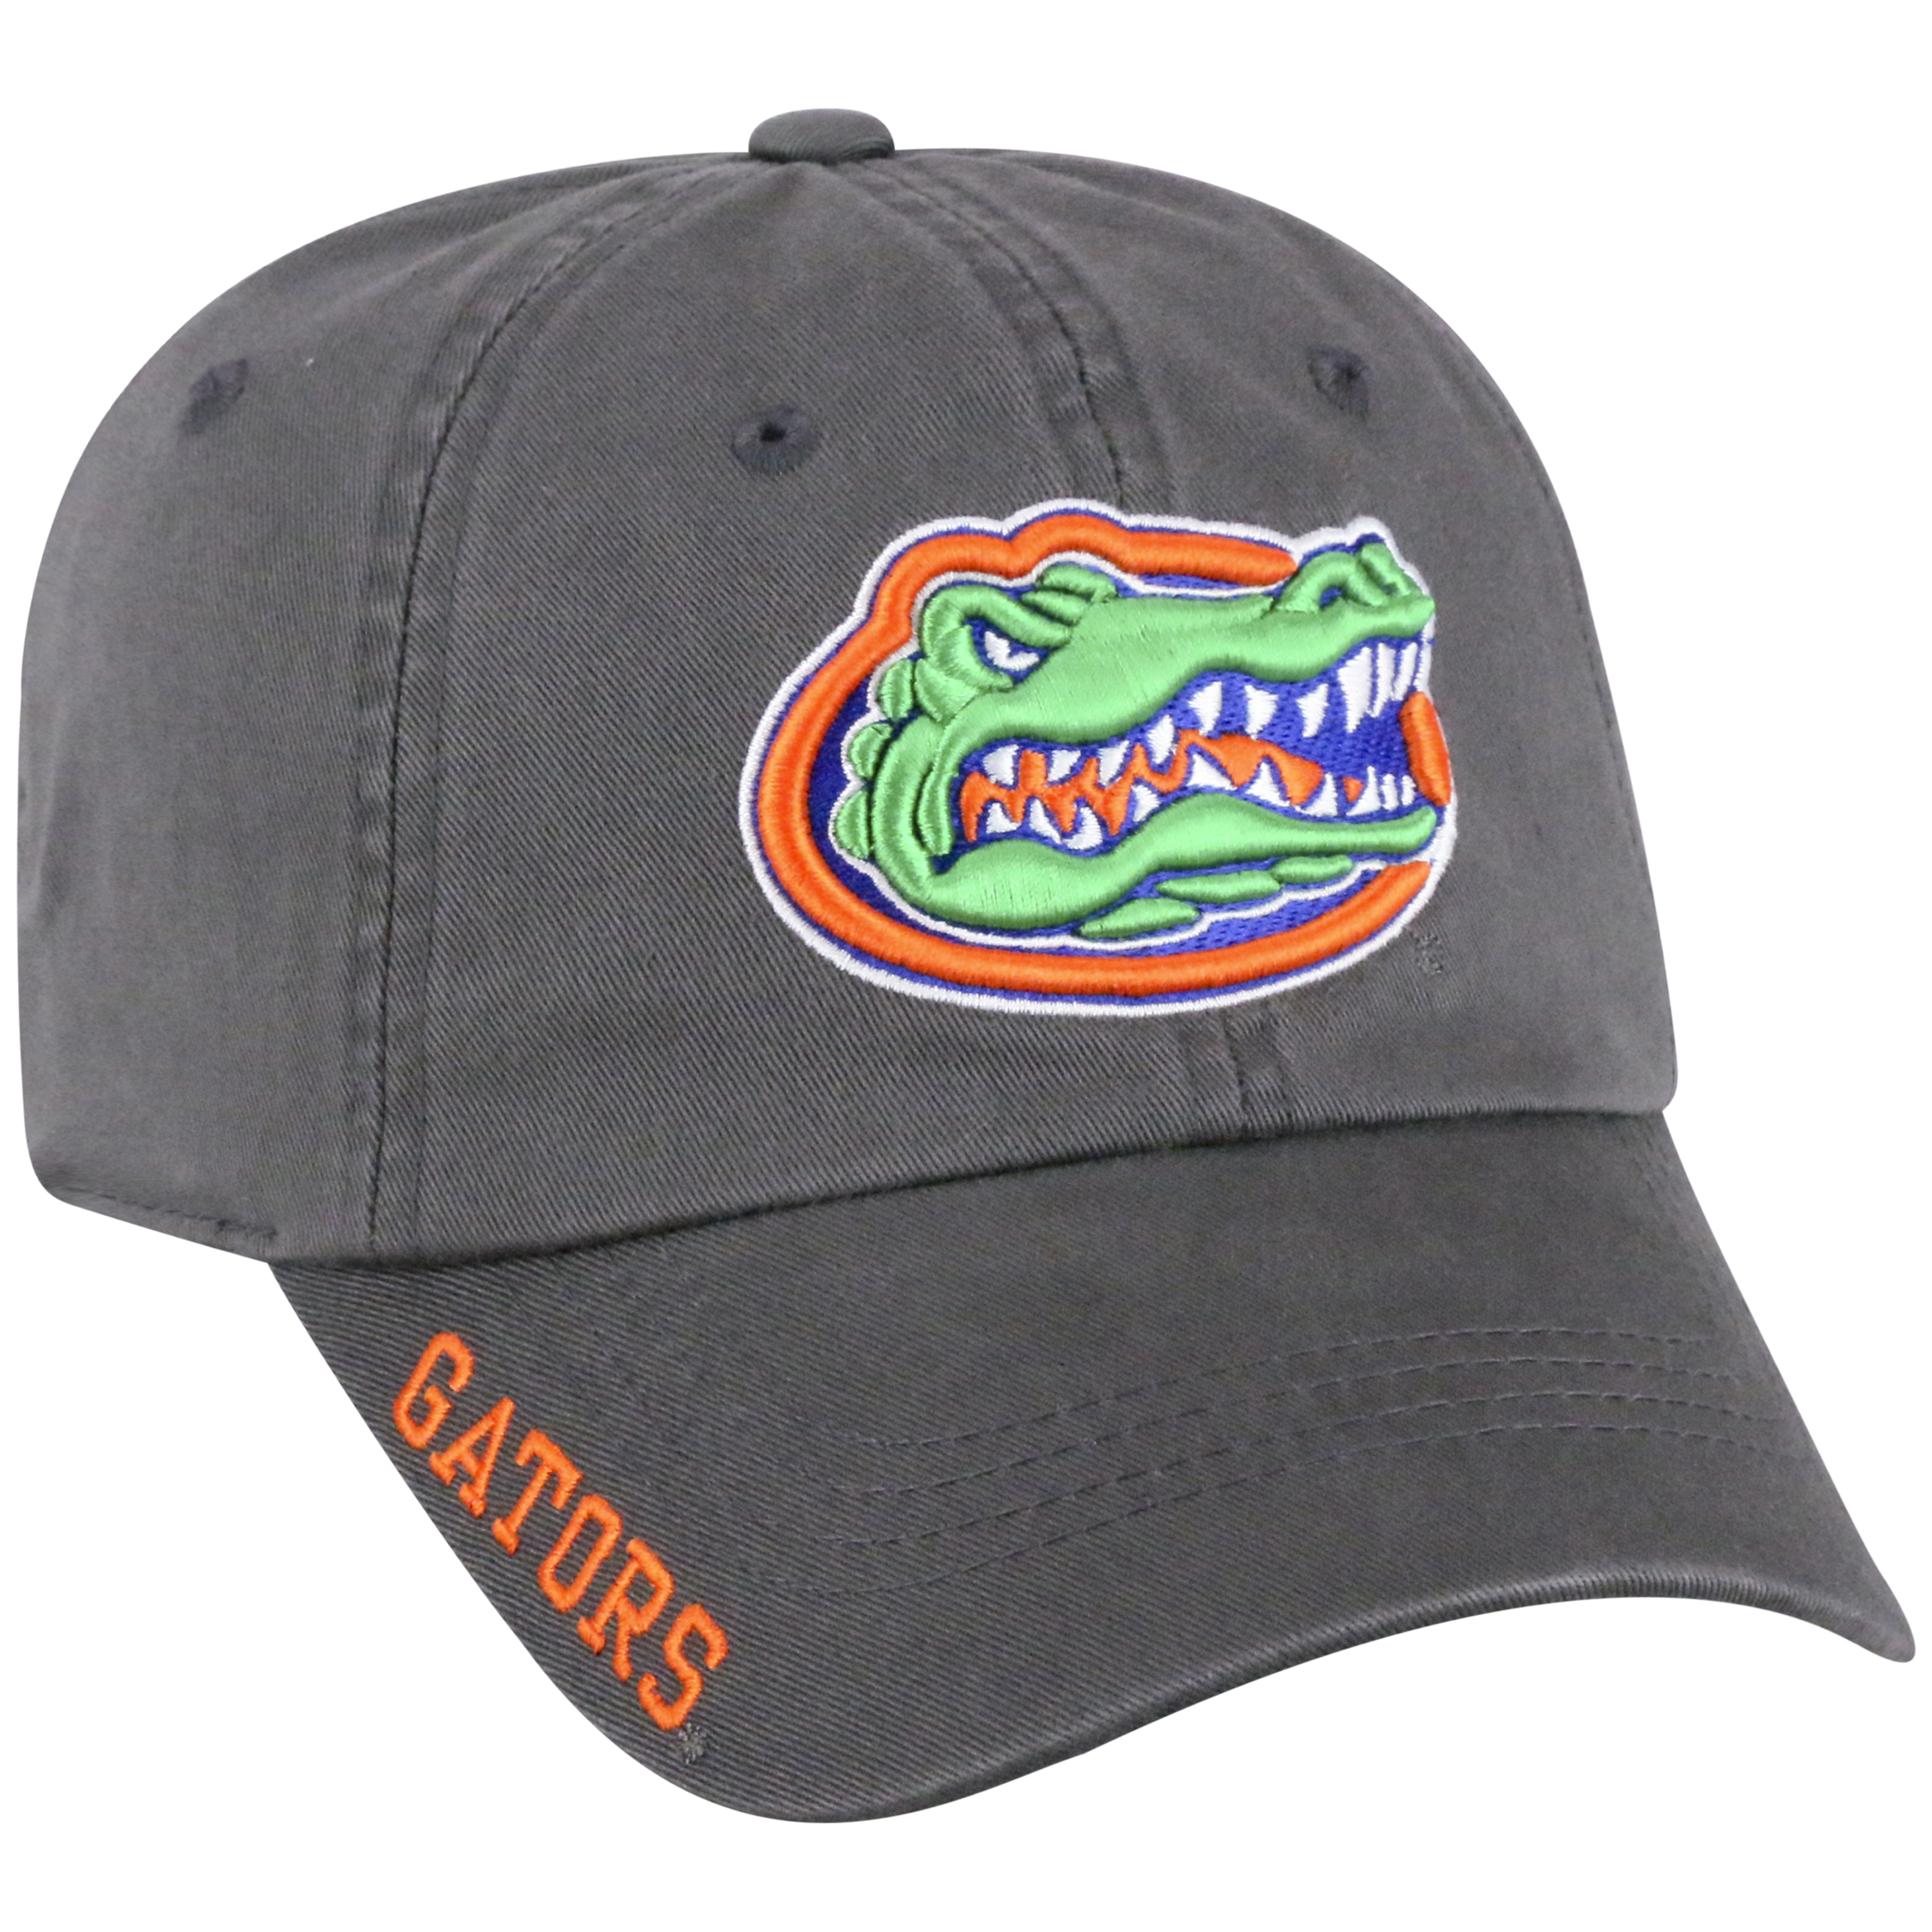 Florida Gators Charcoal Washed